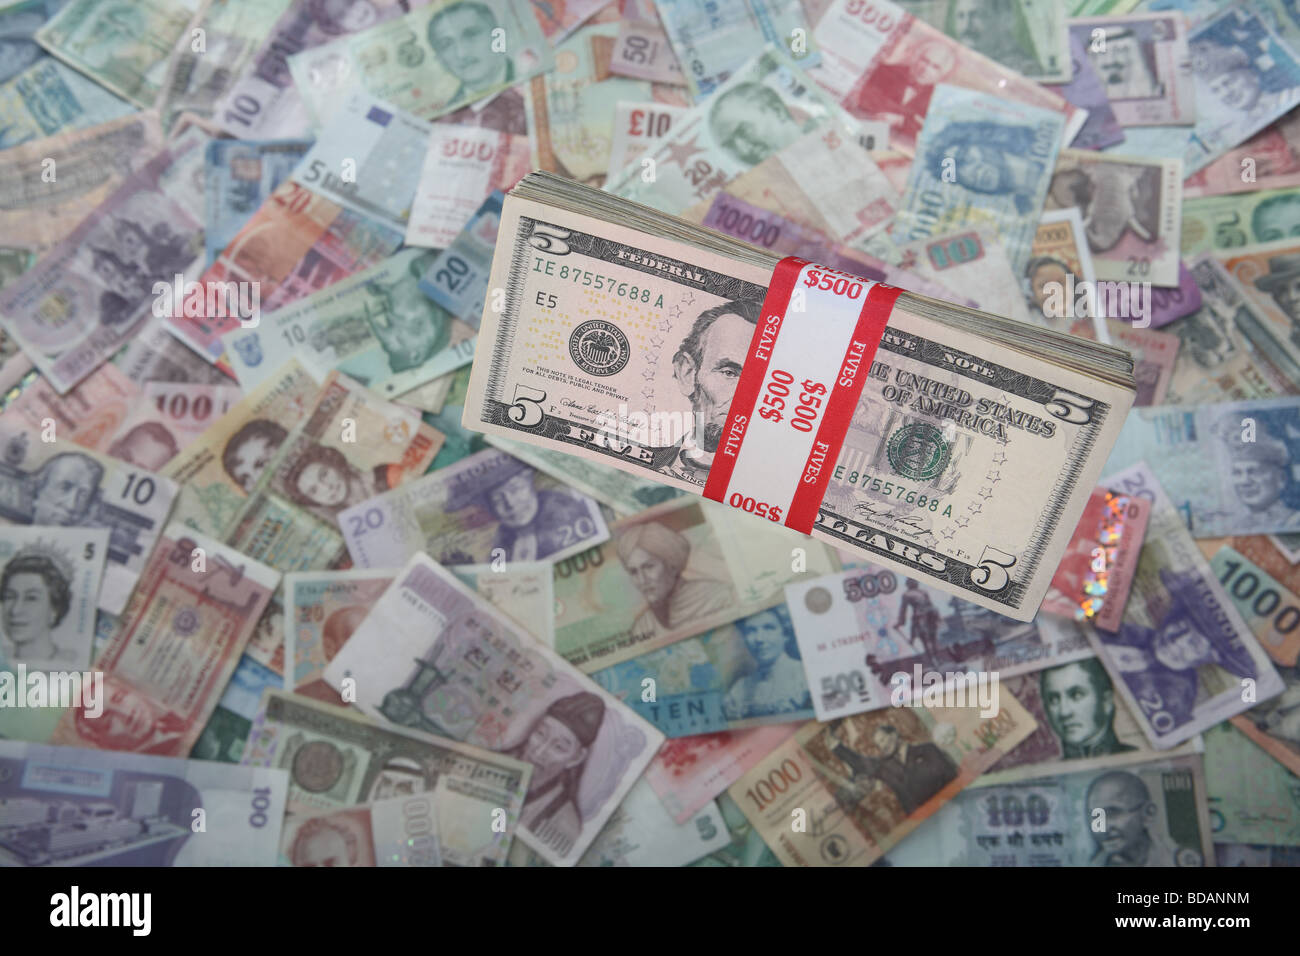 A bundled stack of five dollar bills on a soft background of international currencies - Stock Image